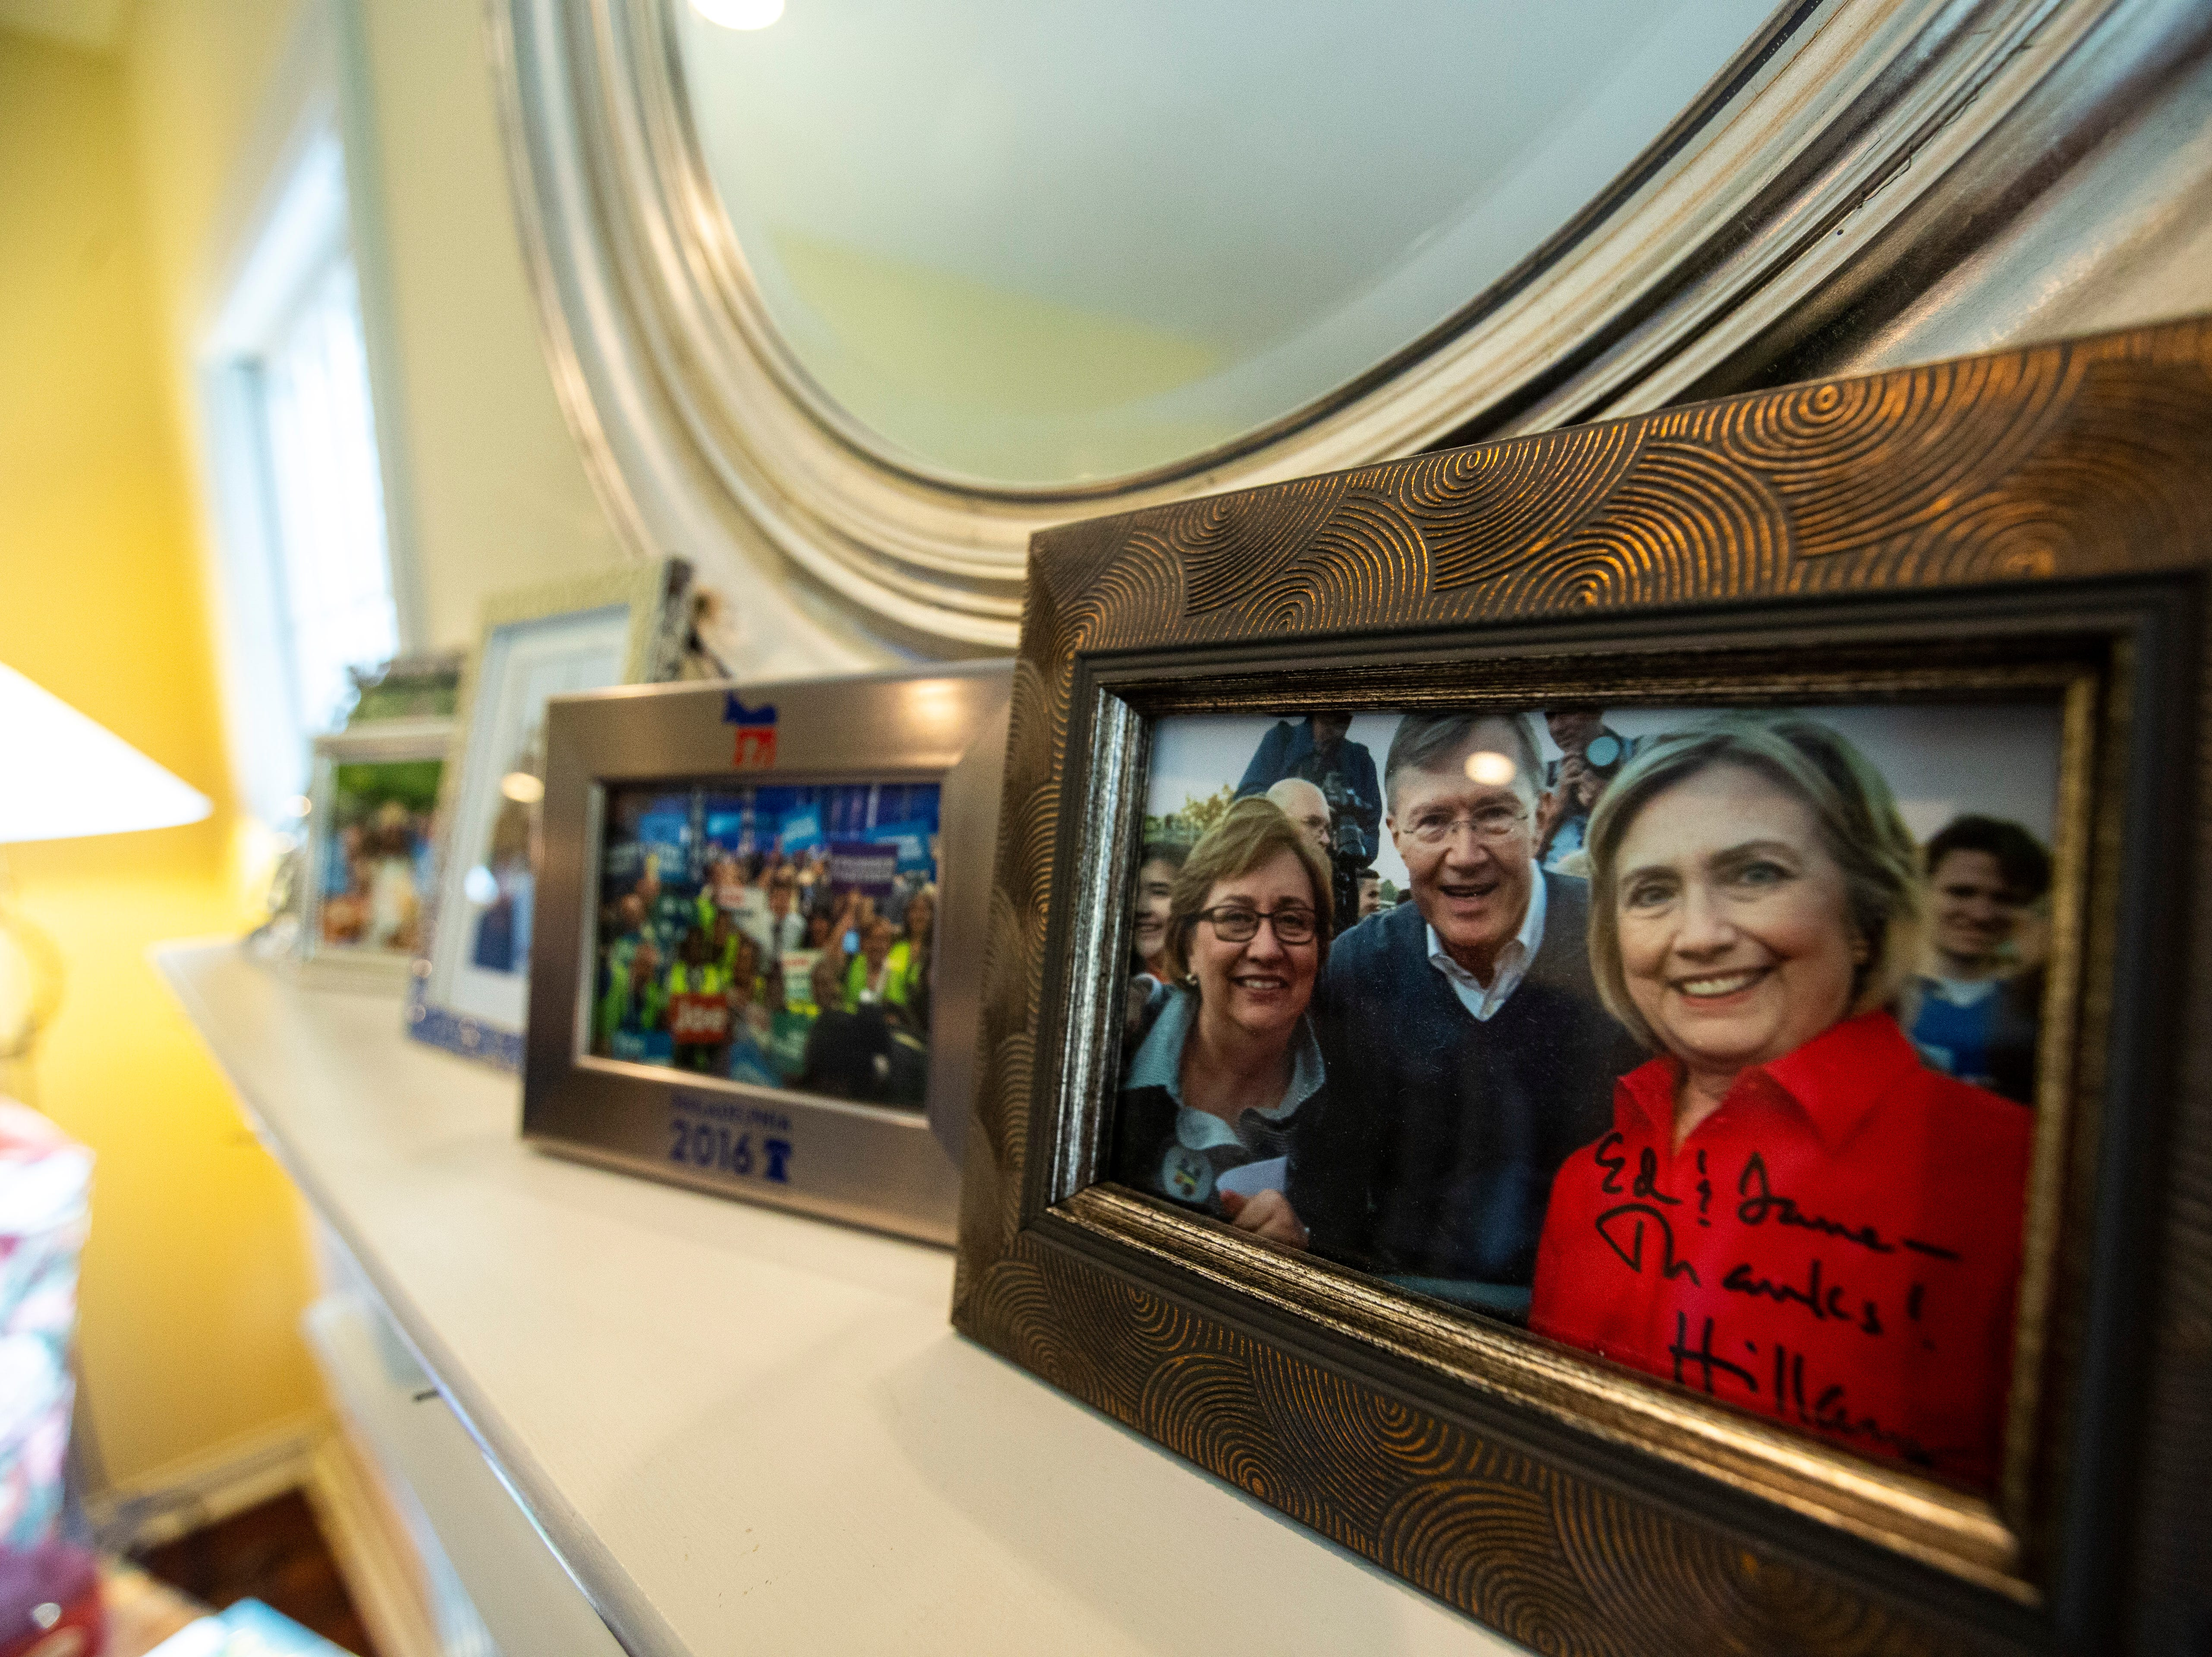 """A framed photo of Ed and Jane Cranston with Hillary Clinton sits on a shelf at a house party hosted by the """"Potluck Insurgency"""" group, Sunday, April 28, 2019, at a home in North Liberty, Iowa."""